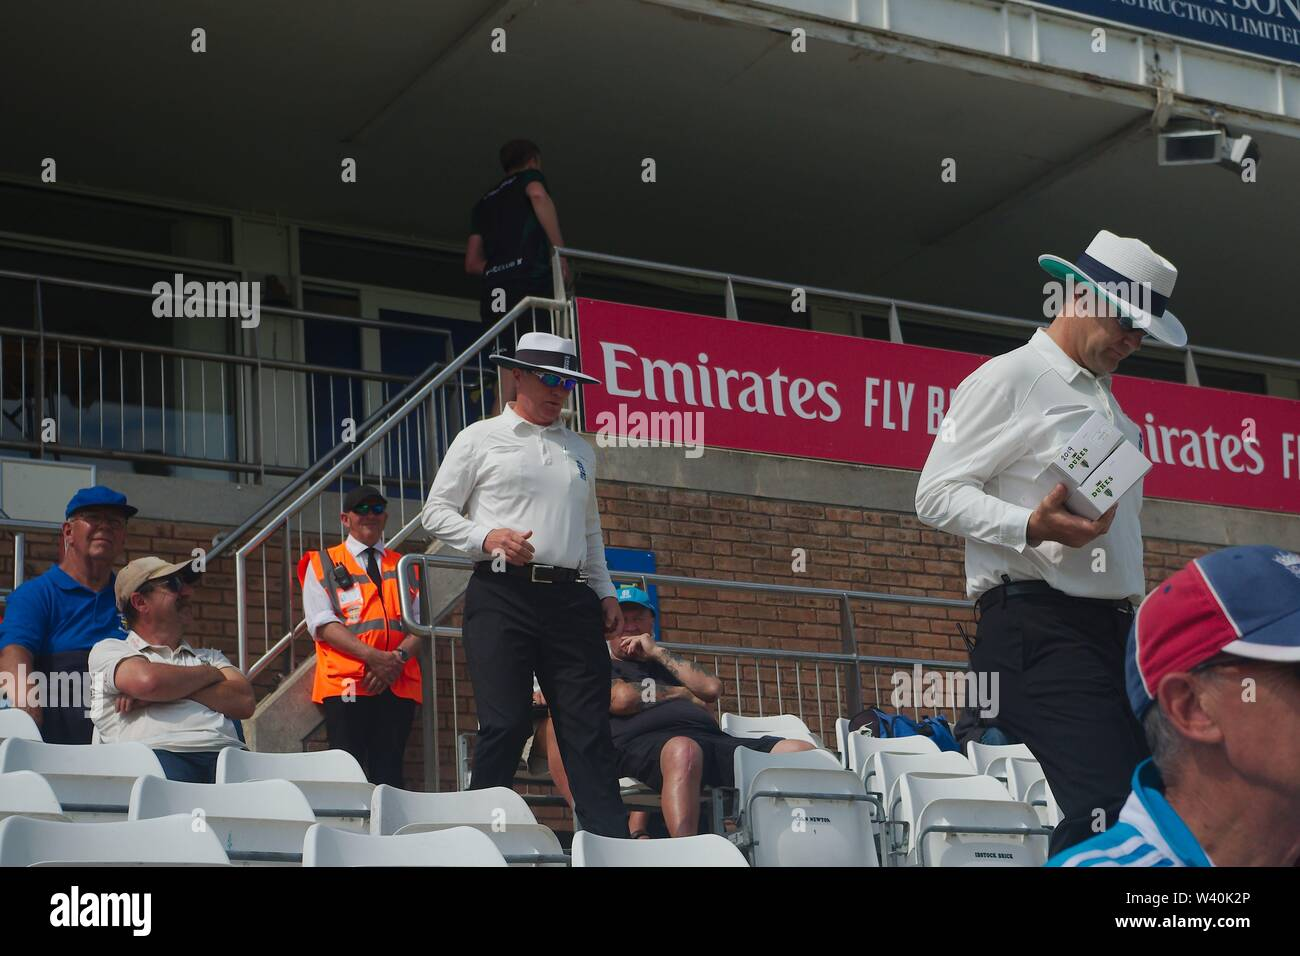 Chester le Street, England, 15 July 2019. Umpires James Middlebrook and Ben Debenham taking to the field at the start of day 3 in the Specsavers County Championship match between Durham and Worcestershire at the Emirates Riverside, Chester le Street. - Stock Image